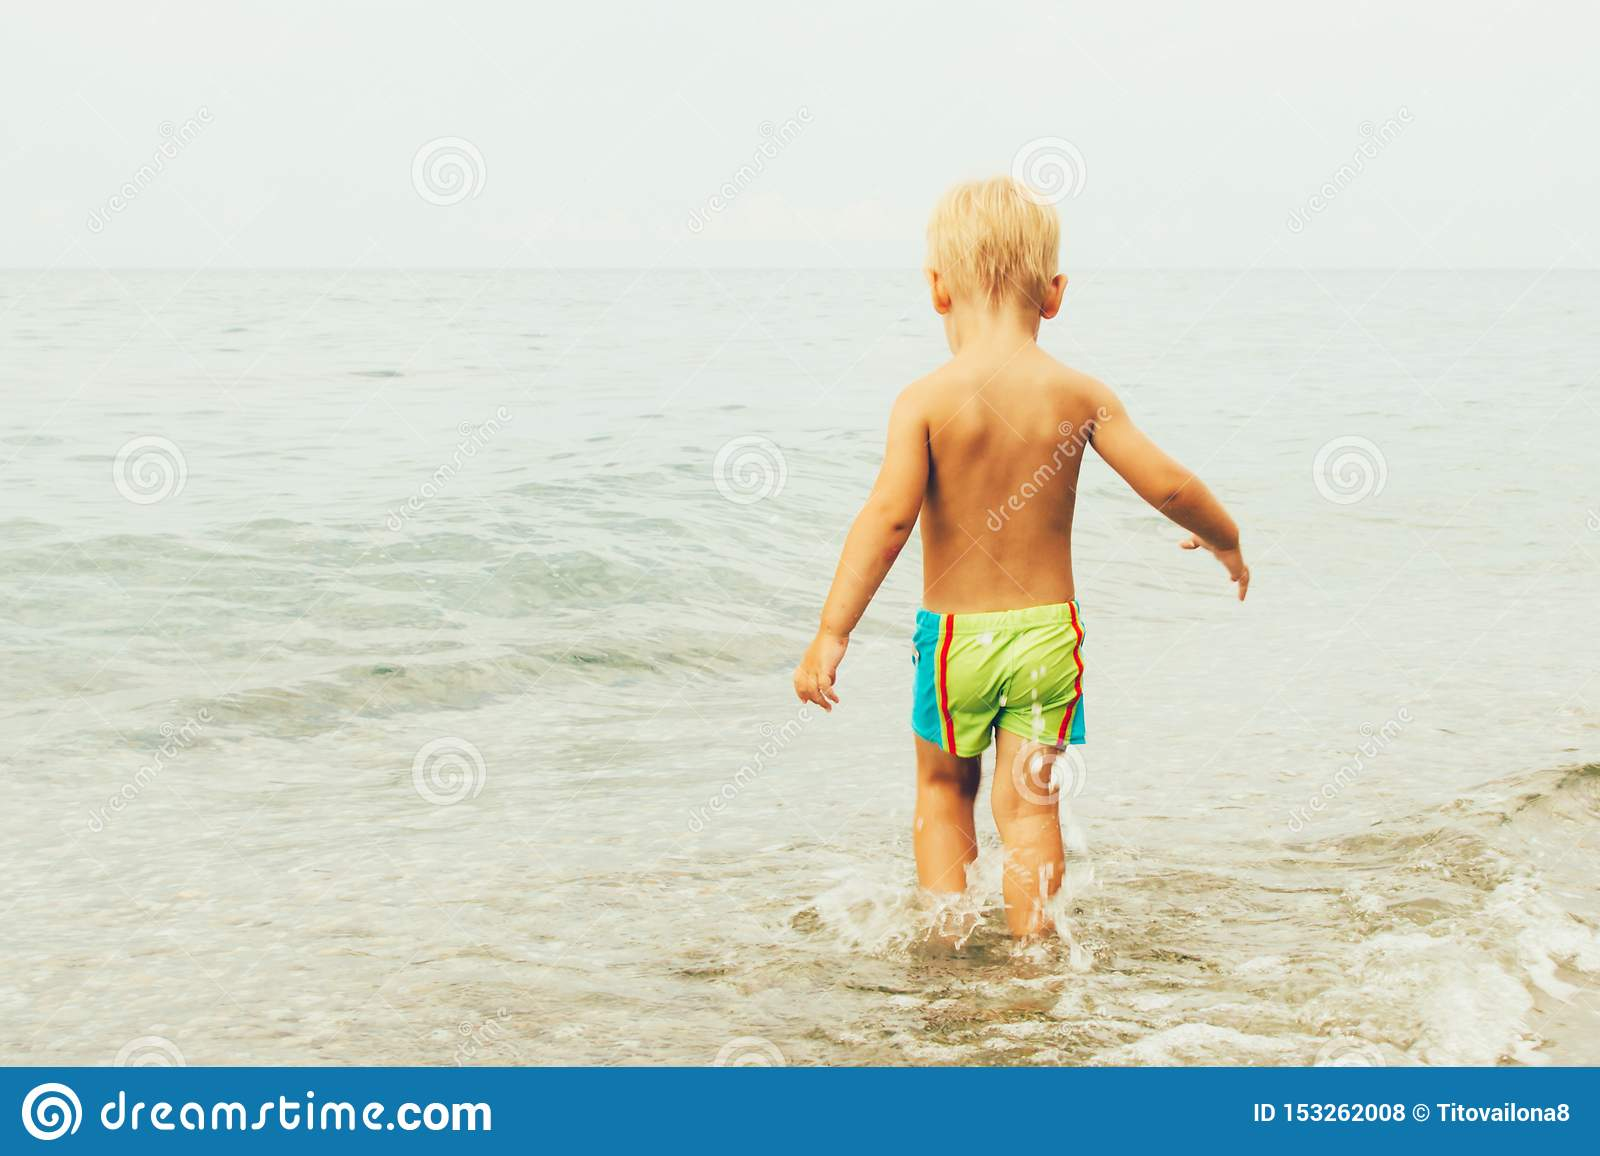 A little boy in swimming trunks comes into the sea, the view from the back. Summer concept of vacation and innocence.